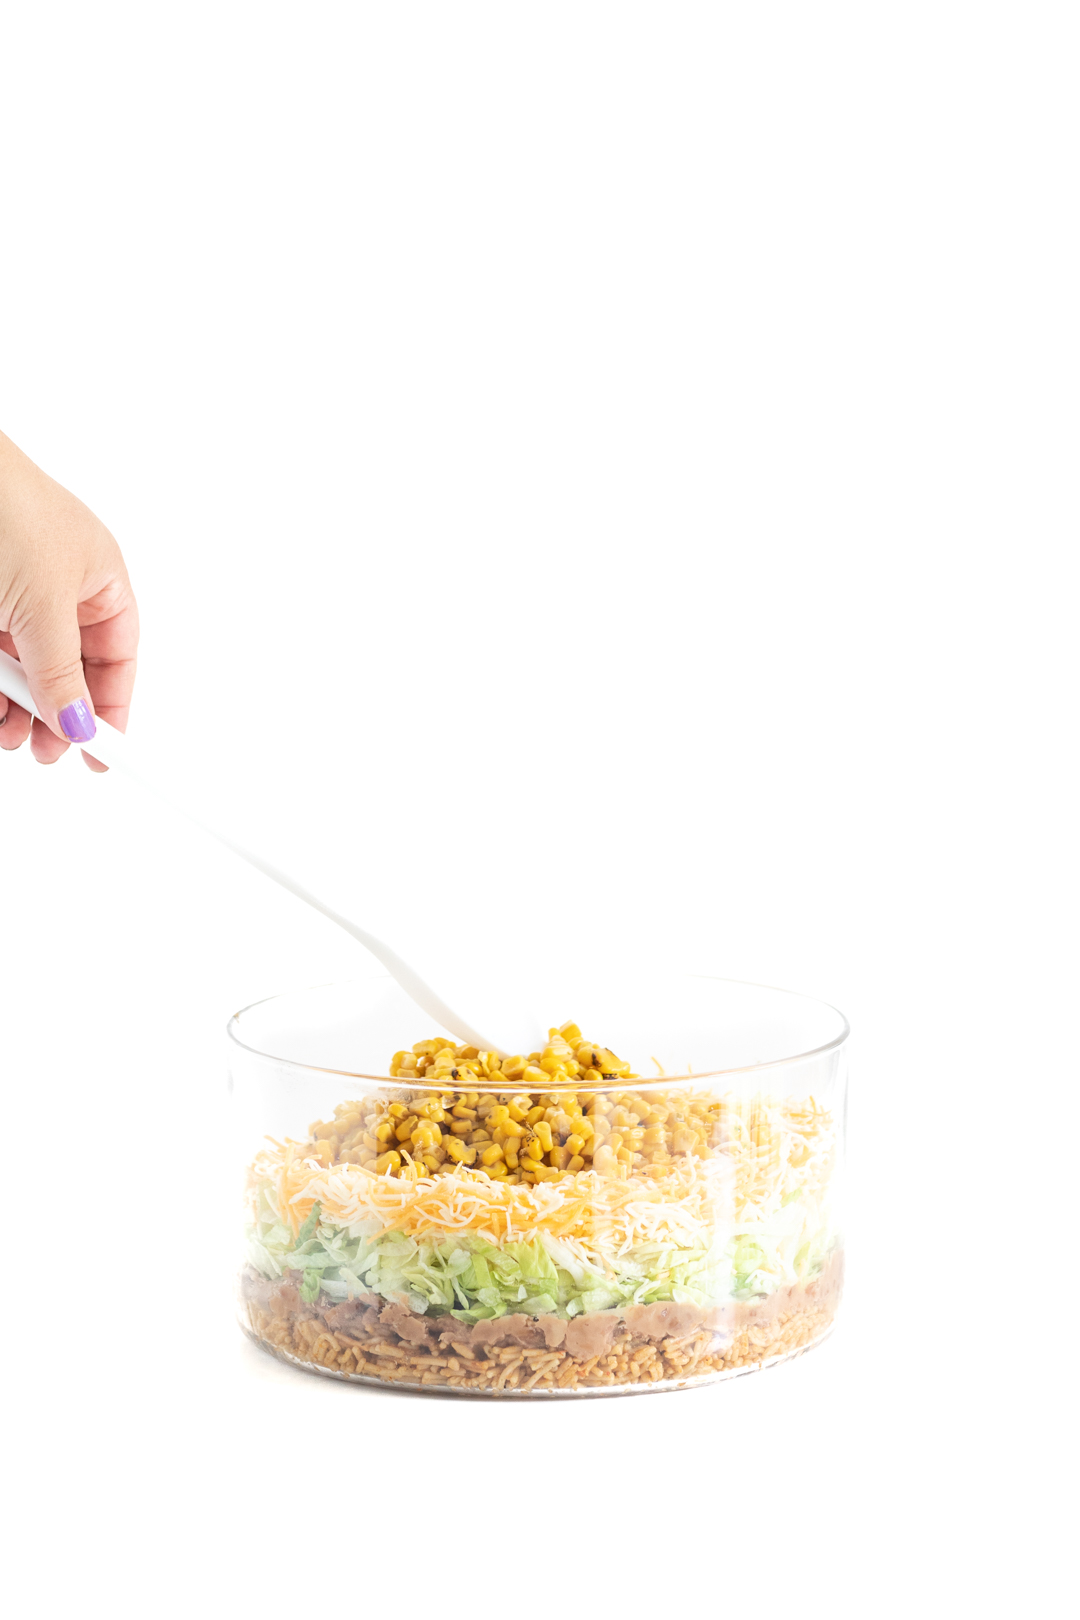 adding a layer of canned corn onto a mexican salad